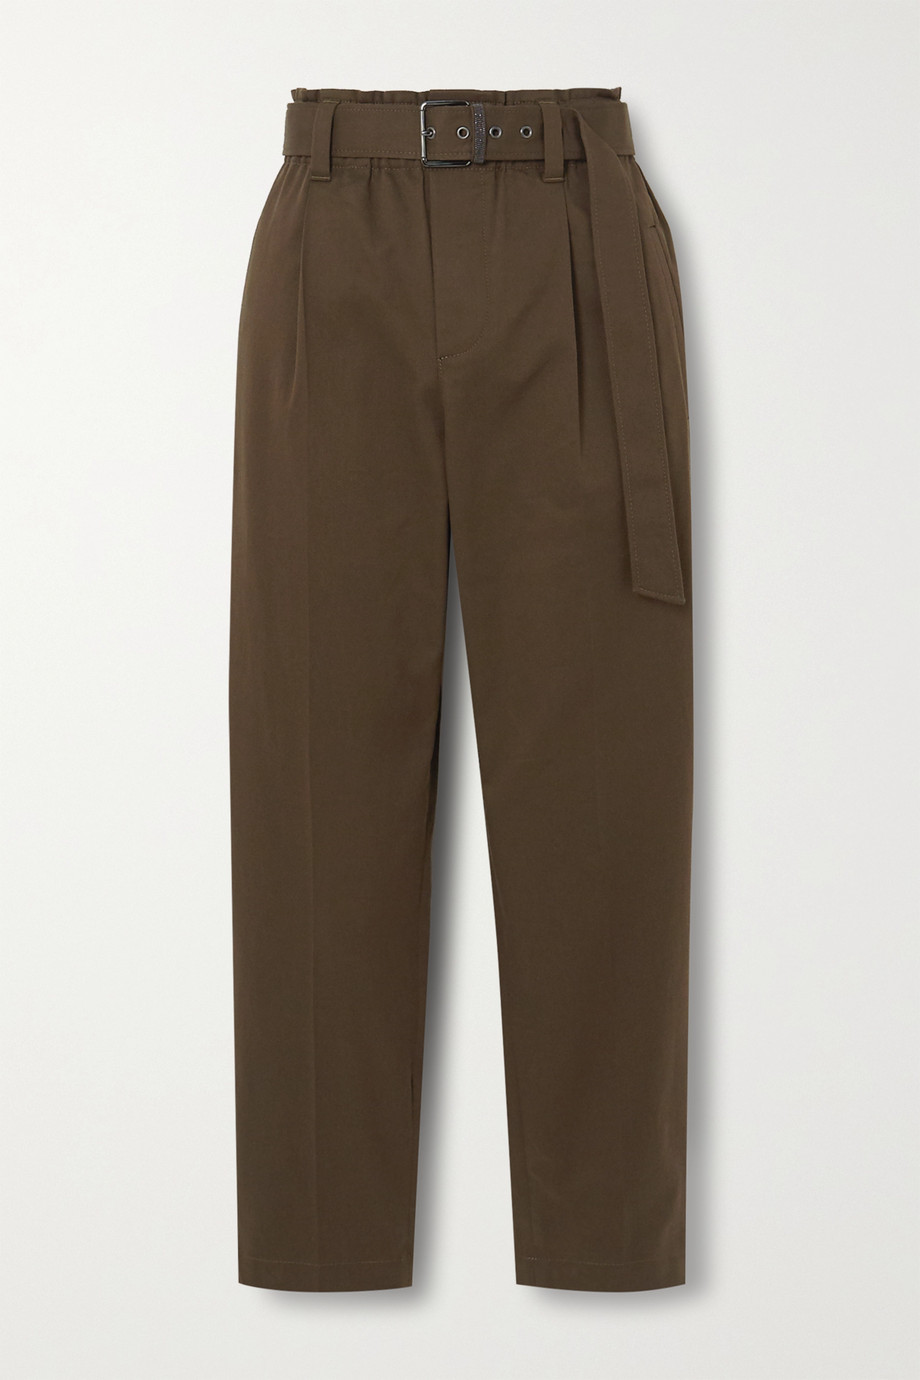 Brunello Cucinelli Bead-embellished belted cotton-blend twill tapered pants